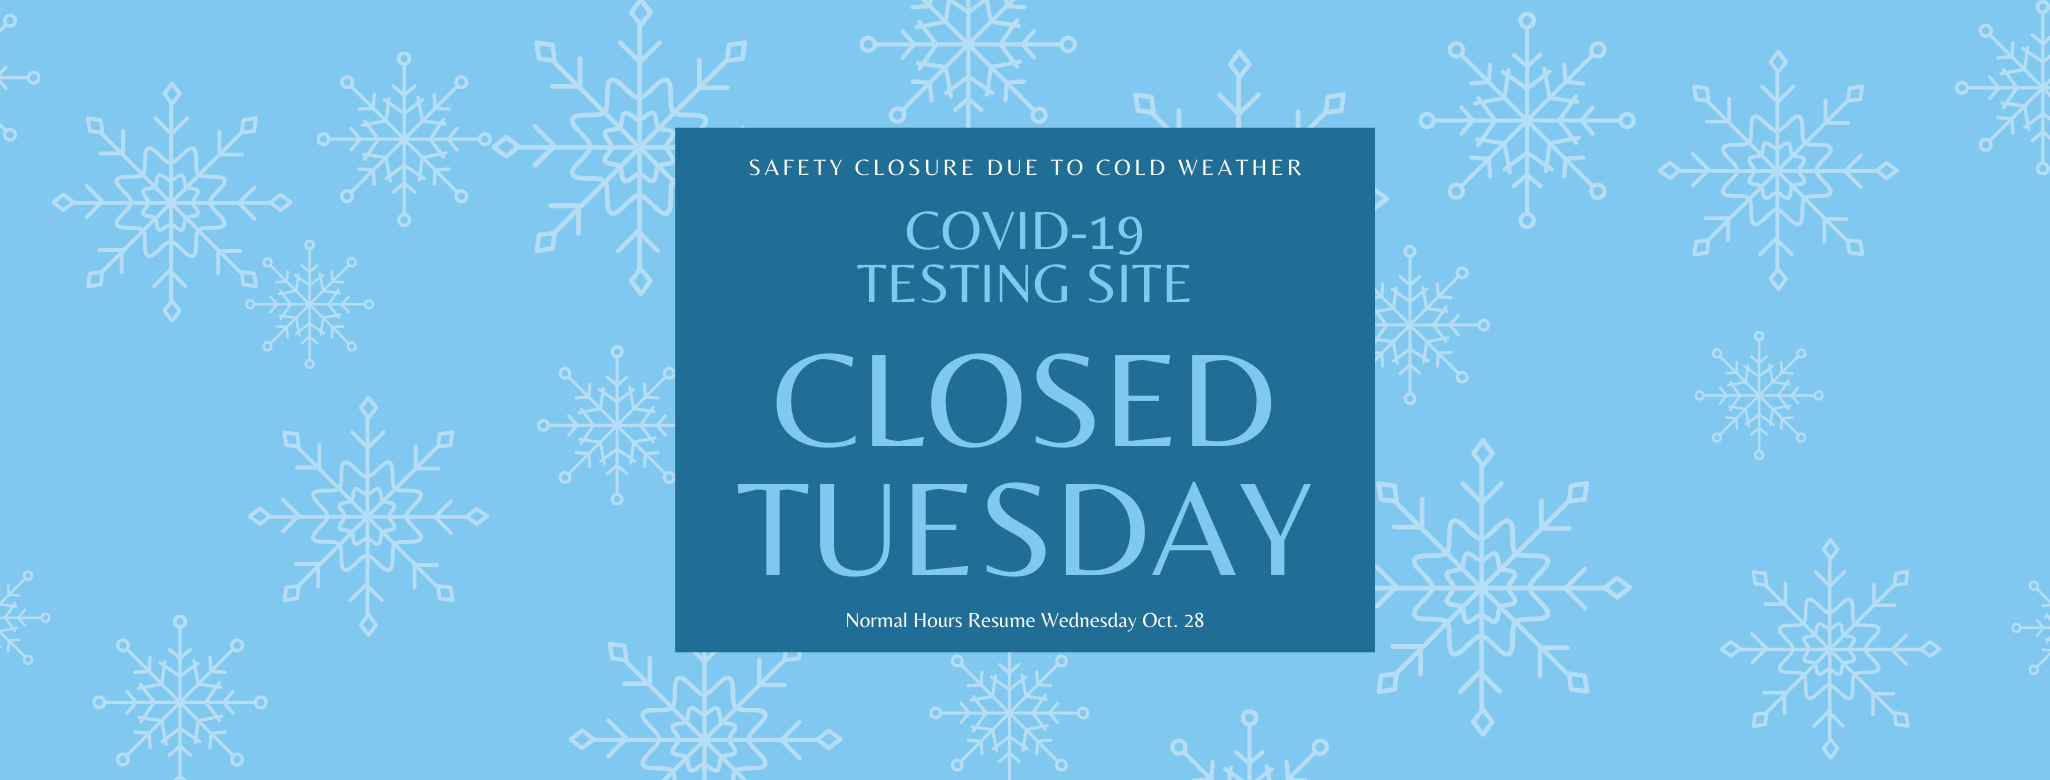 Safety Closure Due to Cold Weather at Community Sampling Site